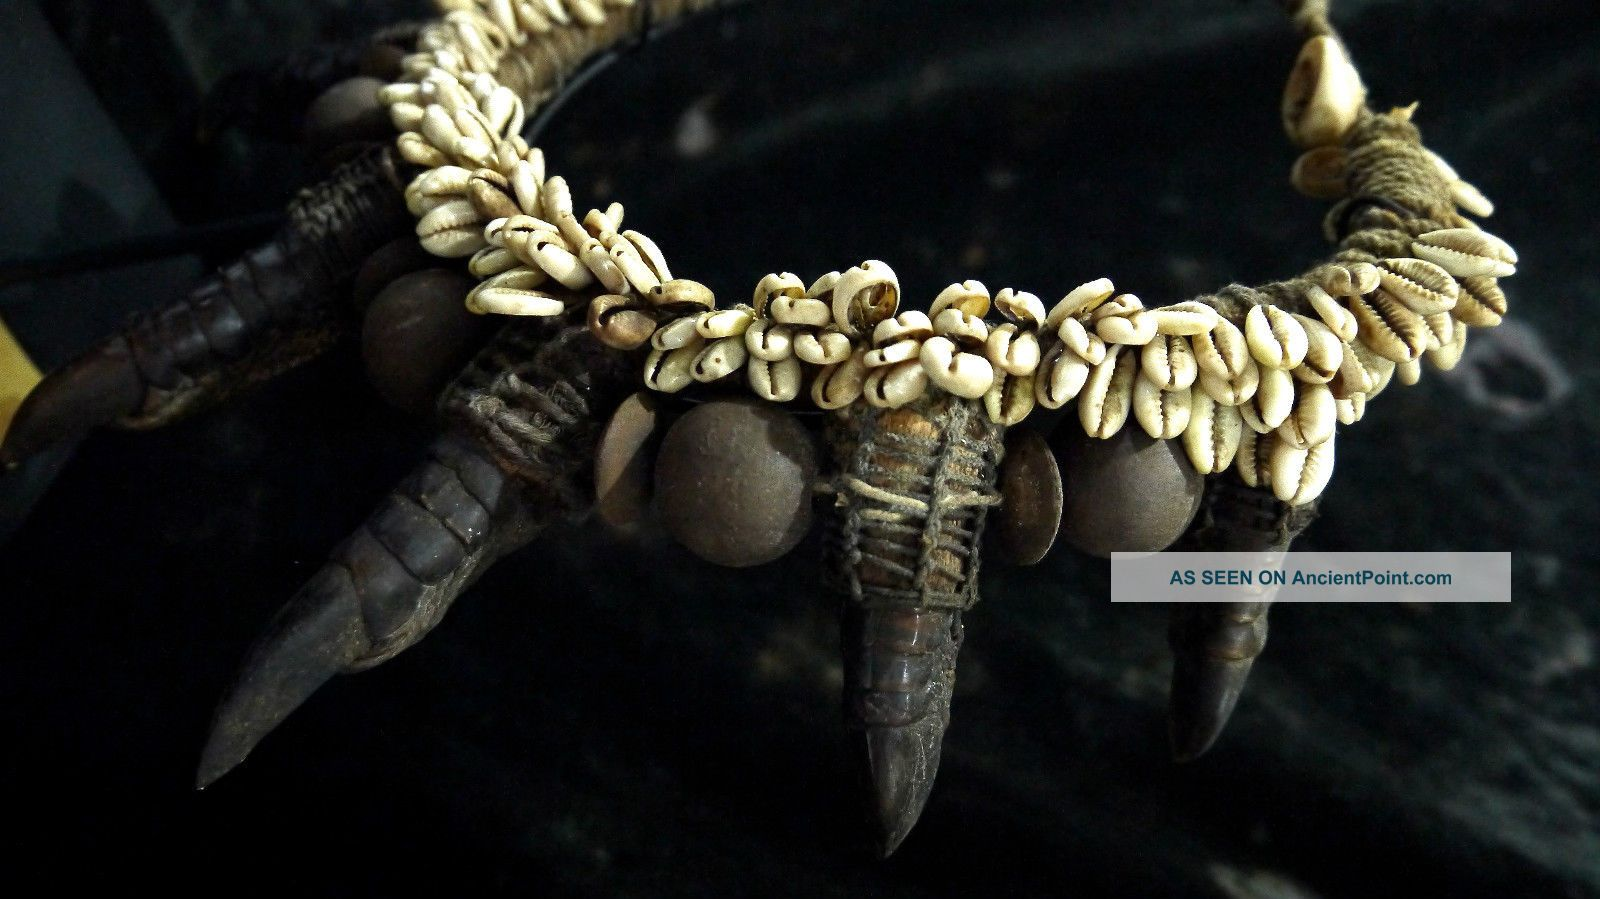 A Rare Cassowary Claw Necklace With Shels Papua New Guinea Tribal Ethnographic Pacific Islands & Oceania photo